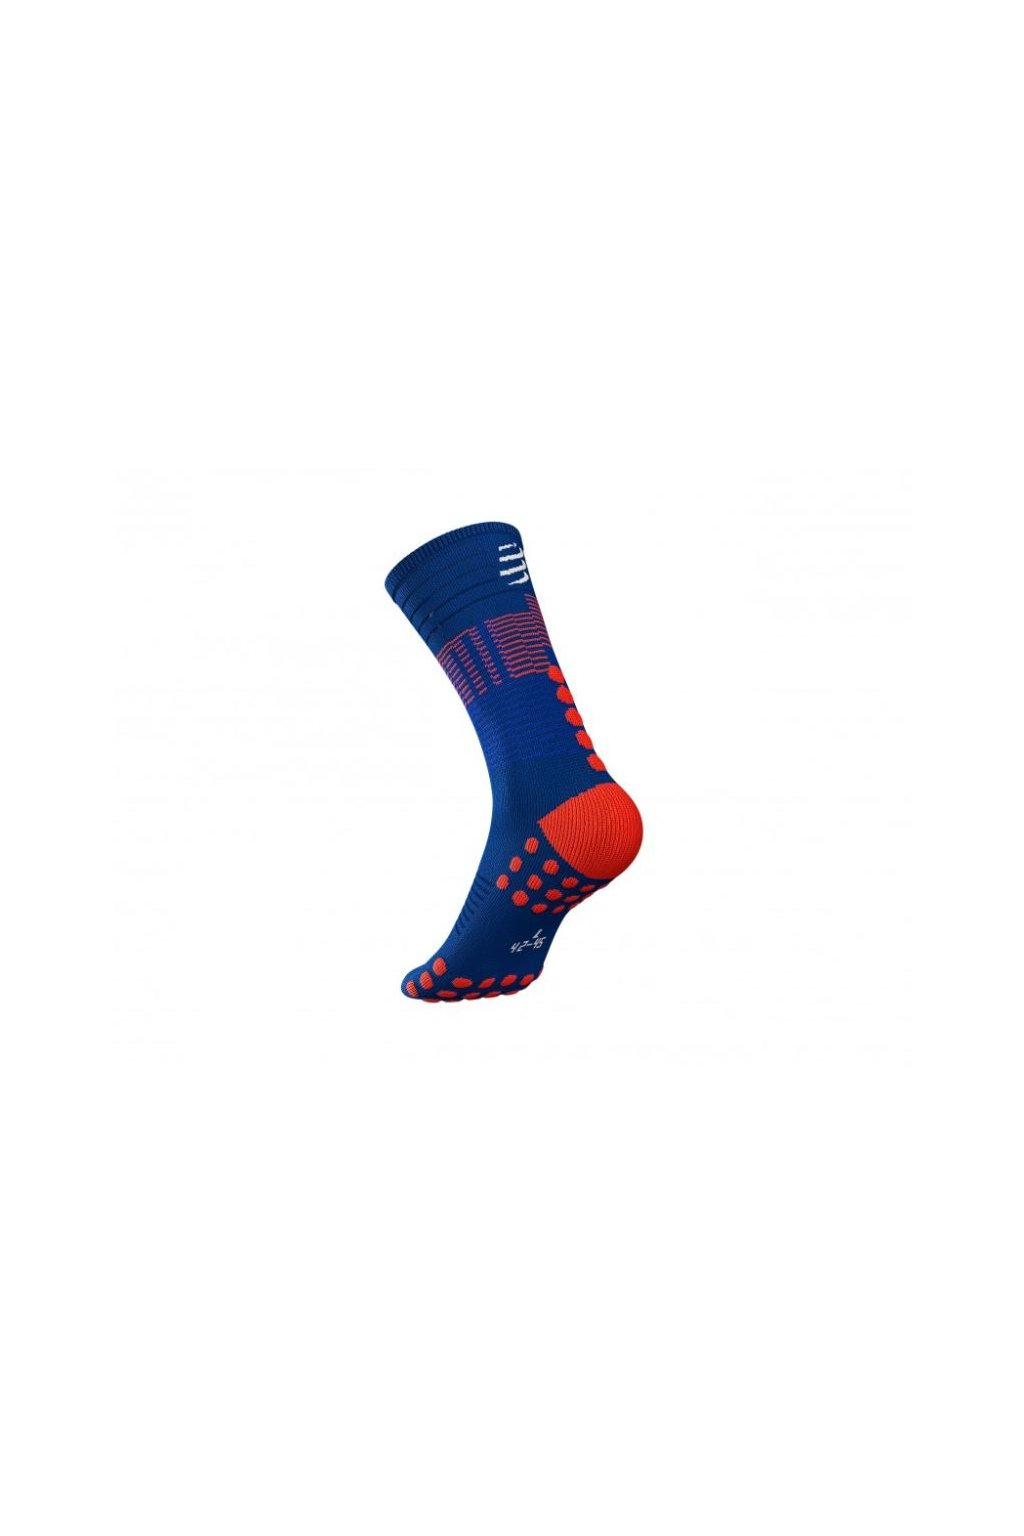 mid compression socks (3)